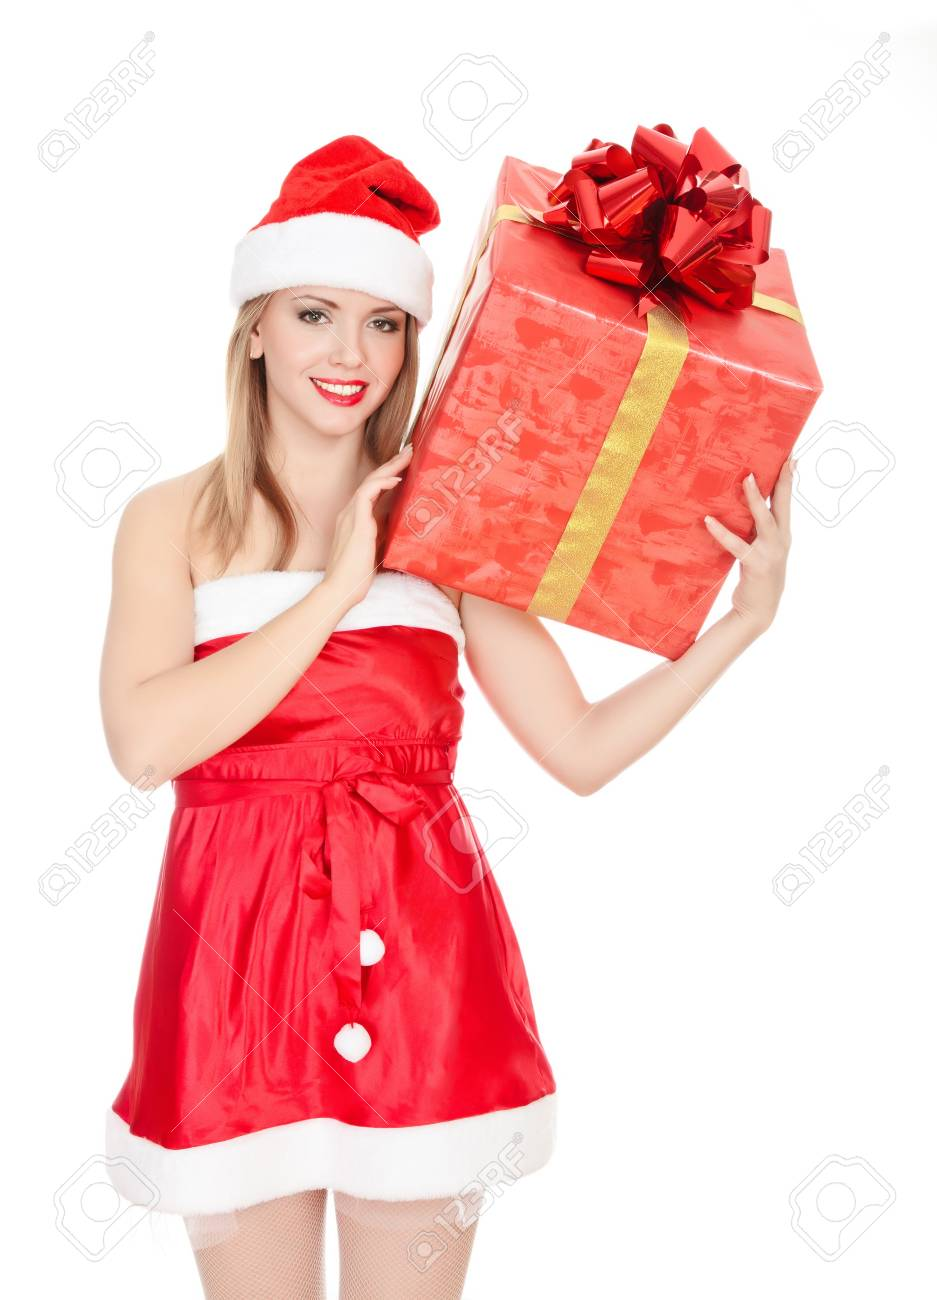 Cheerful santa helper girl with big gift box on her shoulder. Isolated over a white background. Stock Photo - 8329468